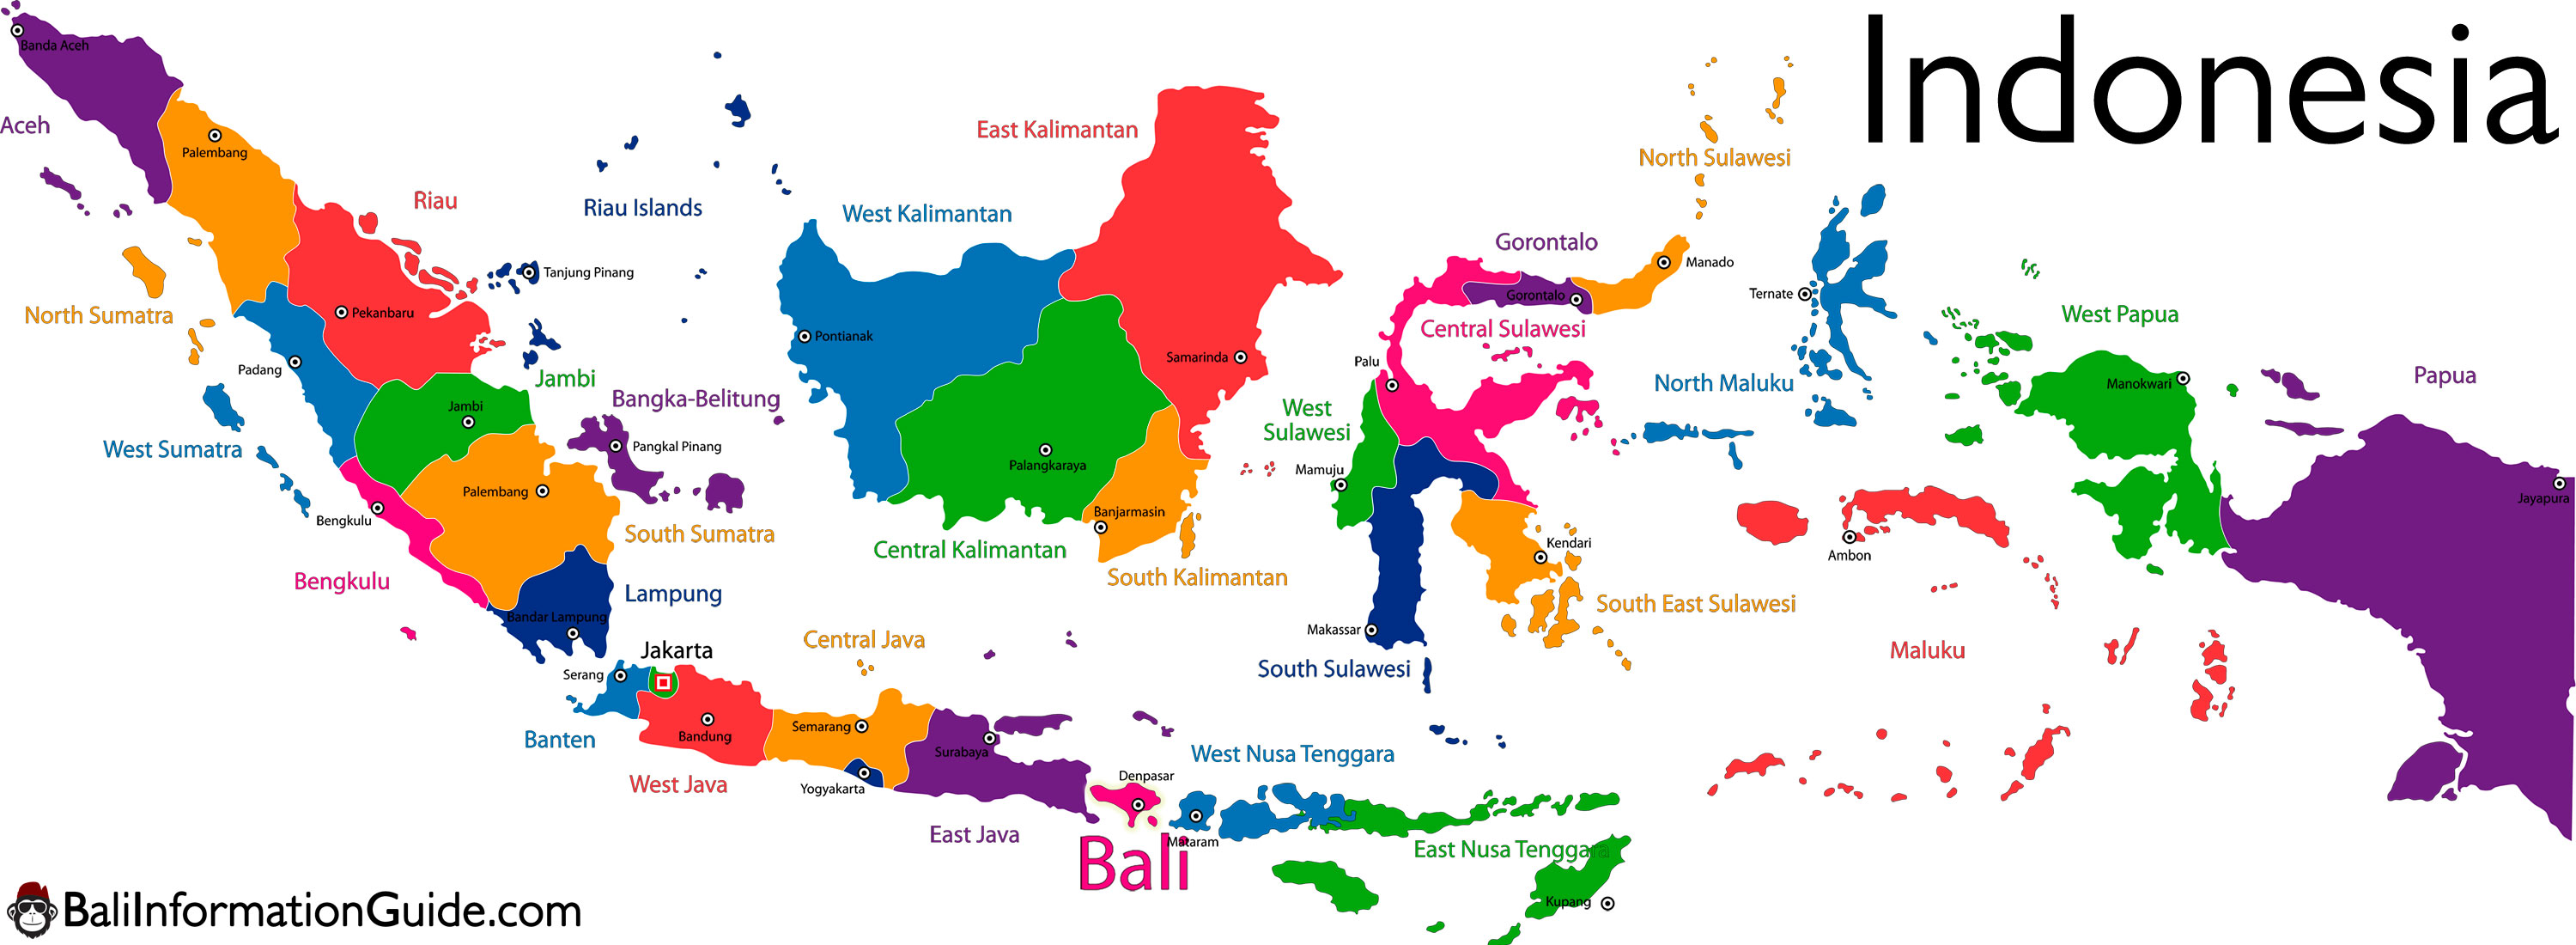 Bali Location On World Map Bali Free Engine Image For User Manual Download